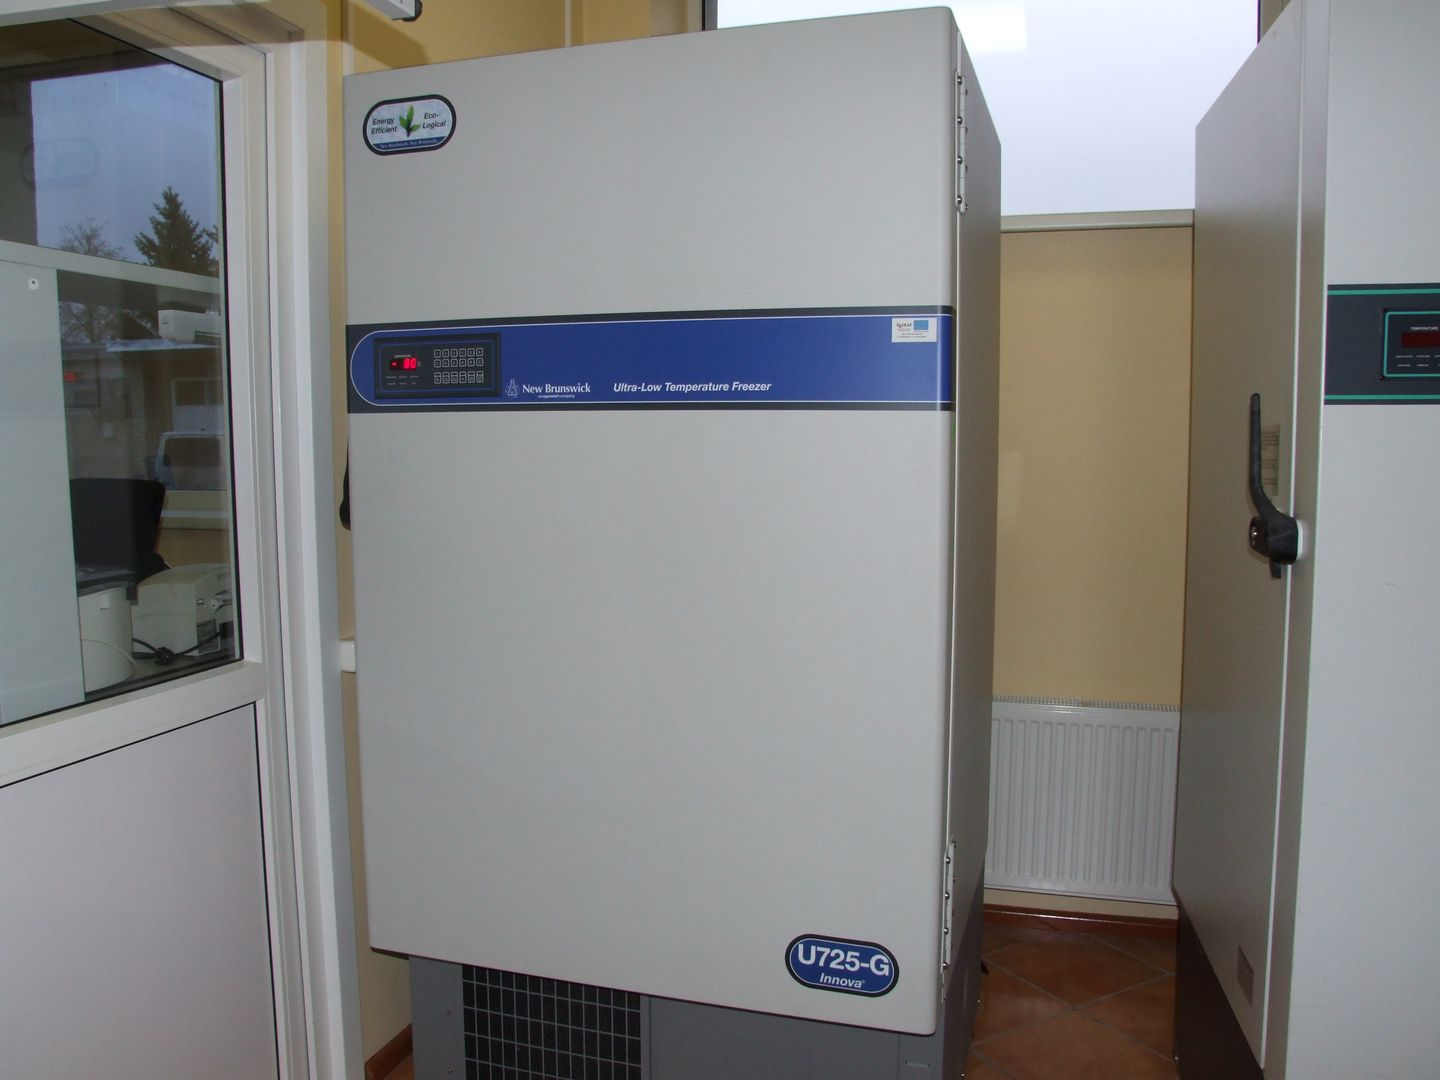 The hydrocarbon U725-G ultra-low temperature freezer